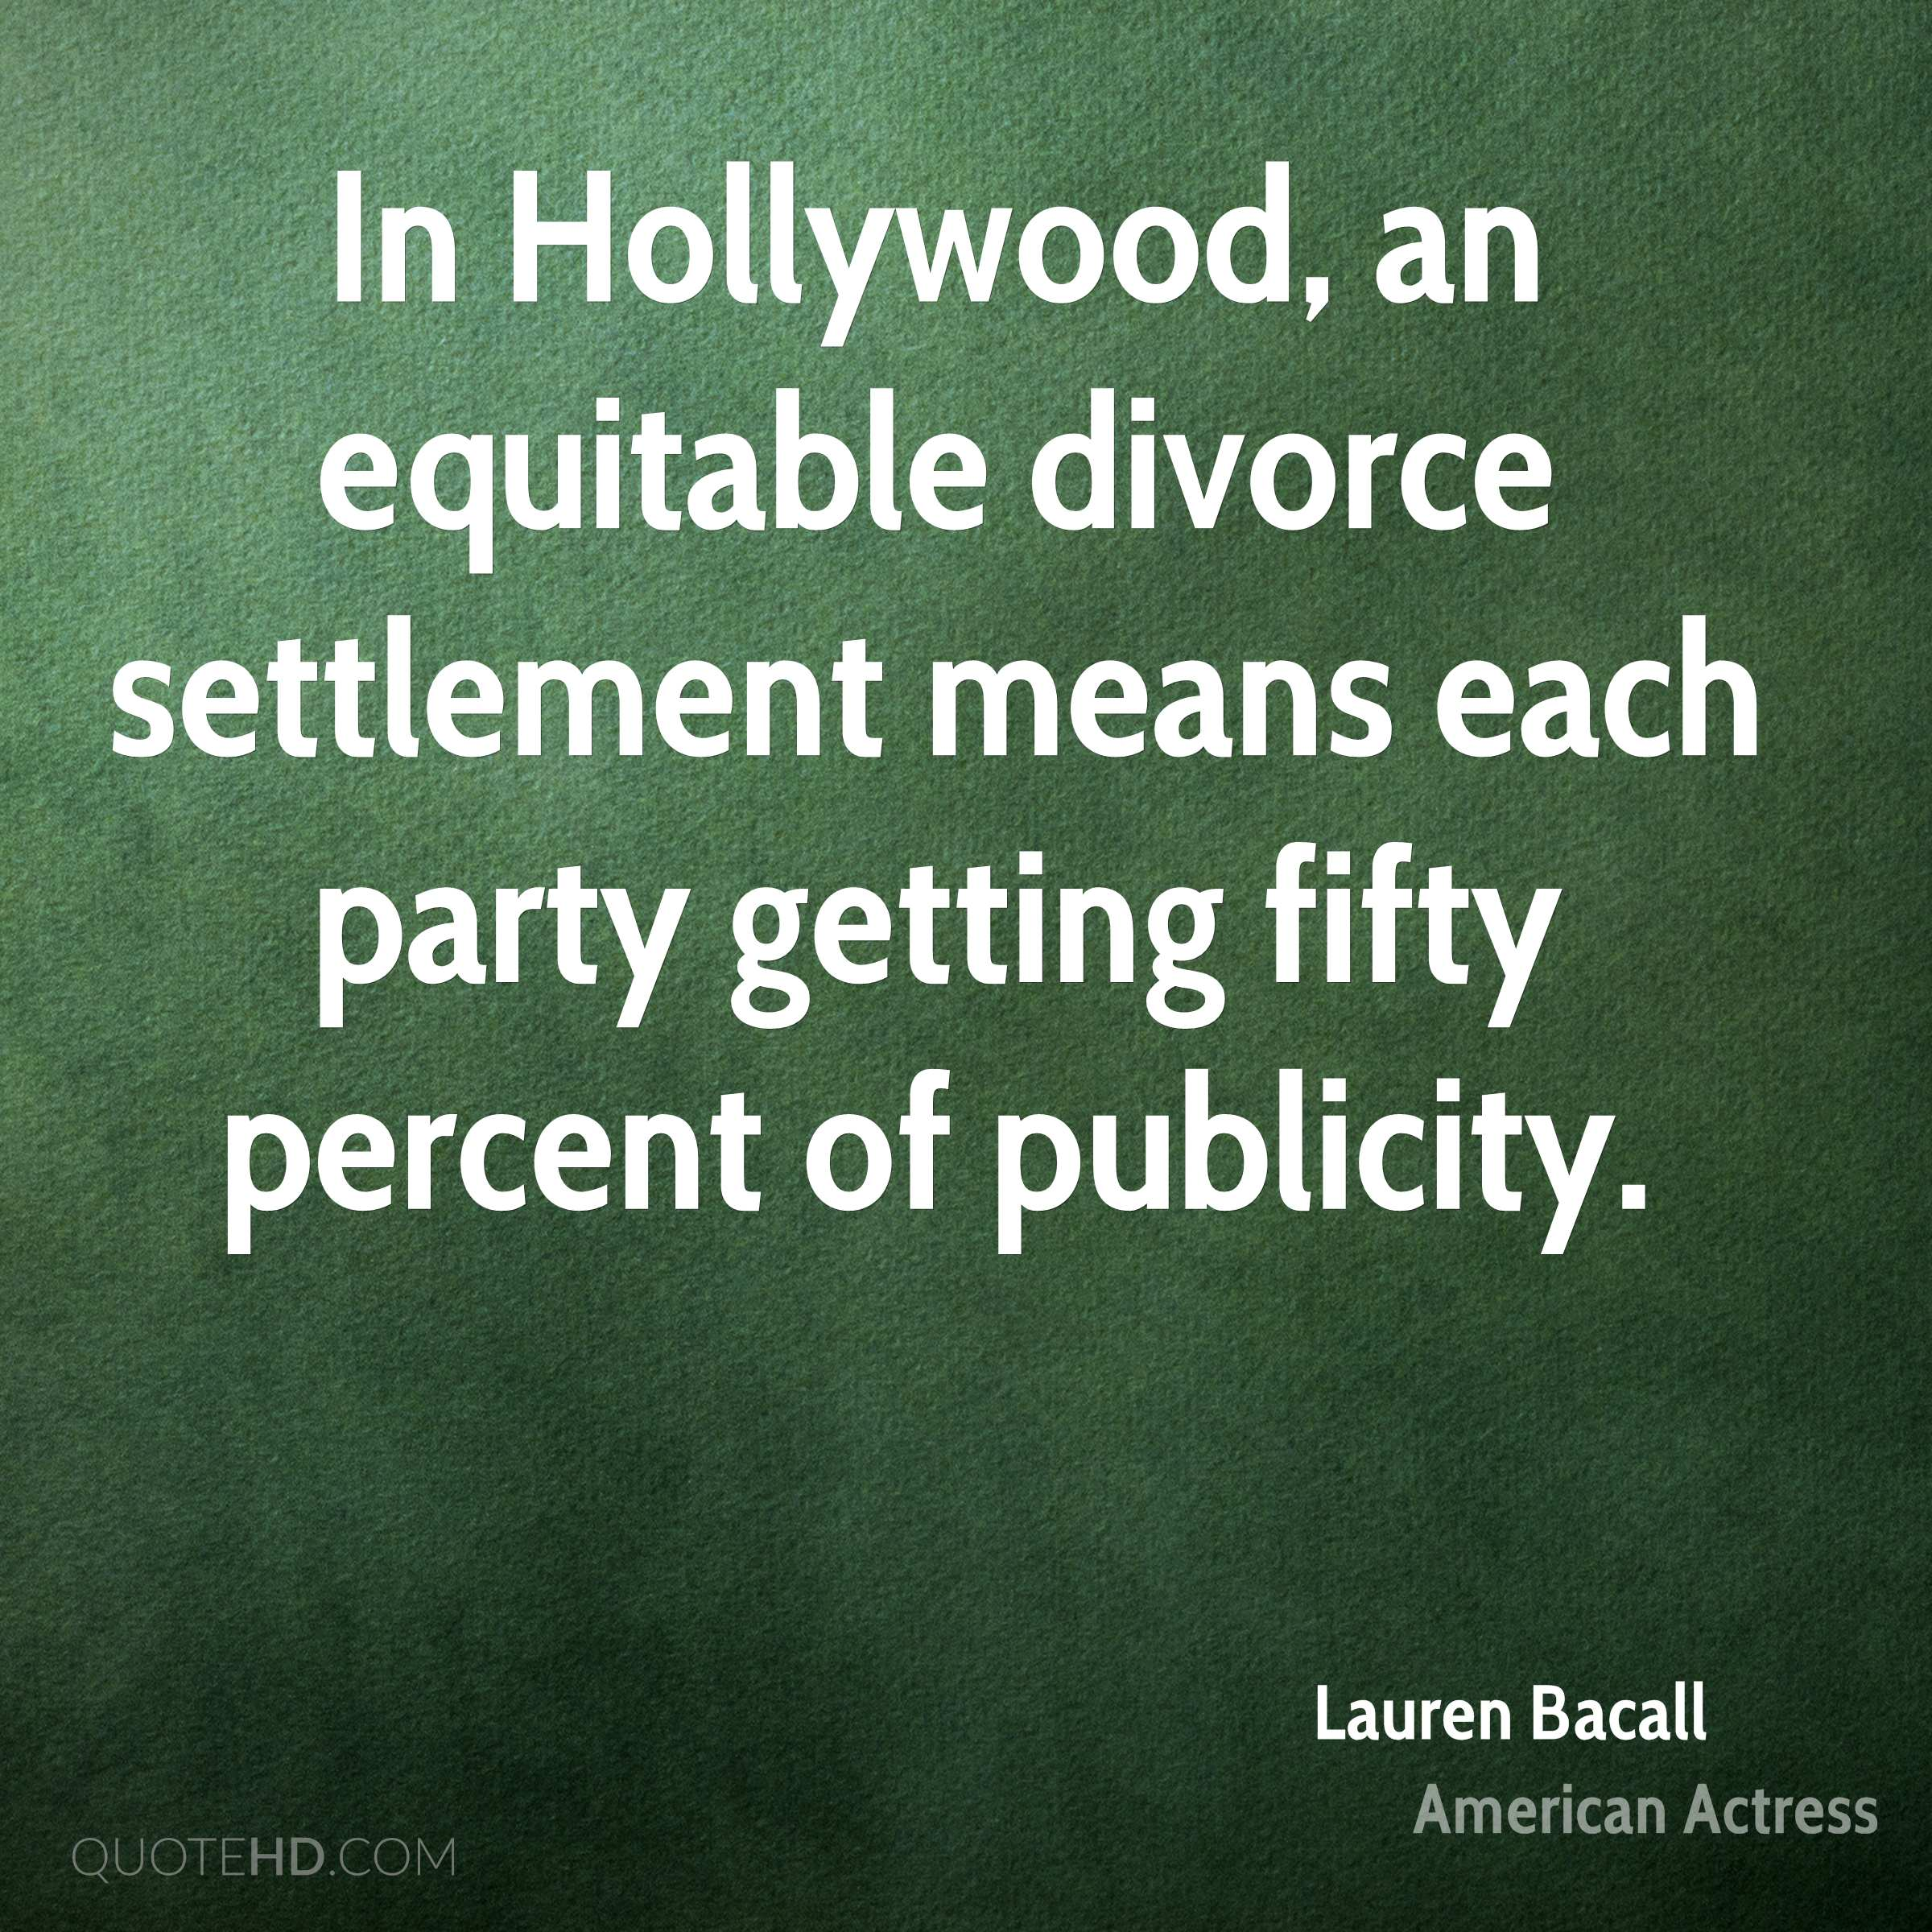 In Hollywood, an equitable divorce settlement means each party getting fifty percent of publicity.